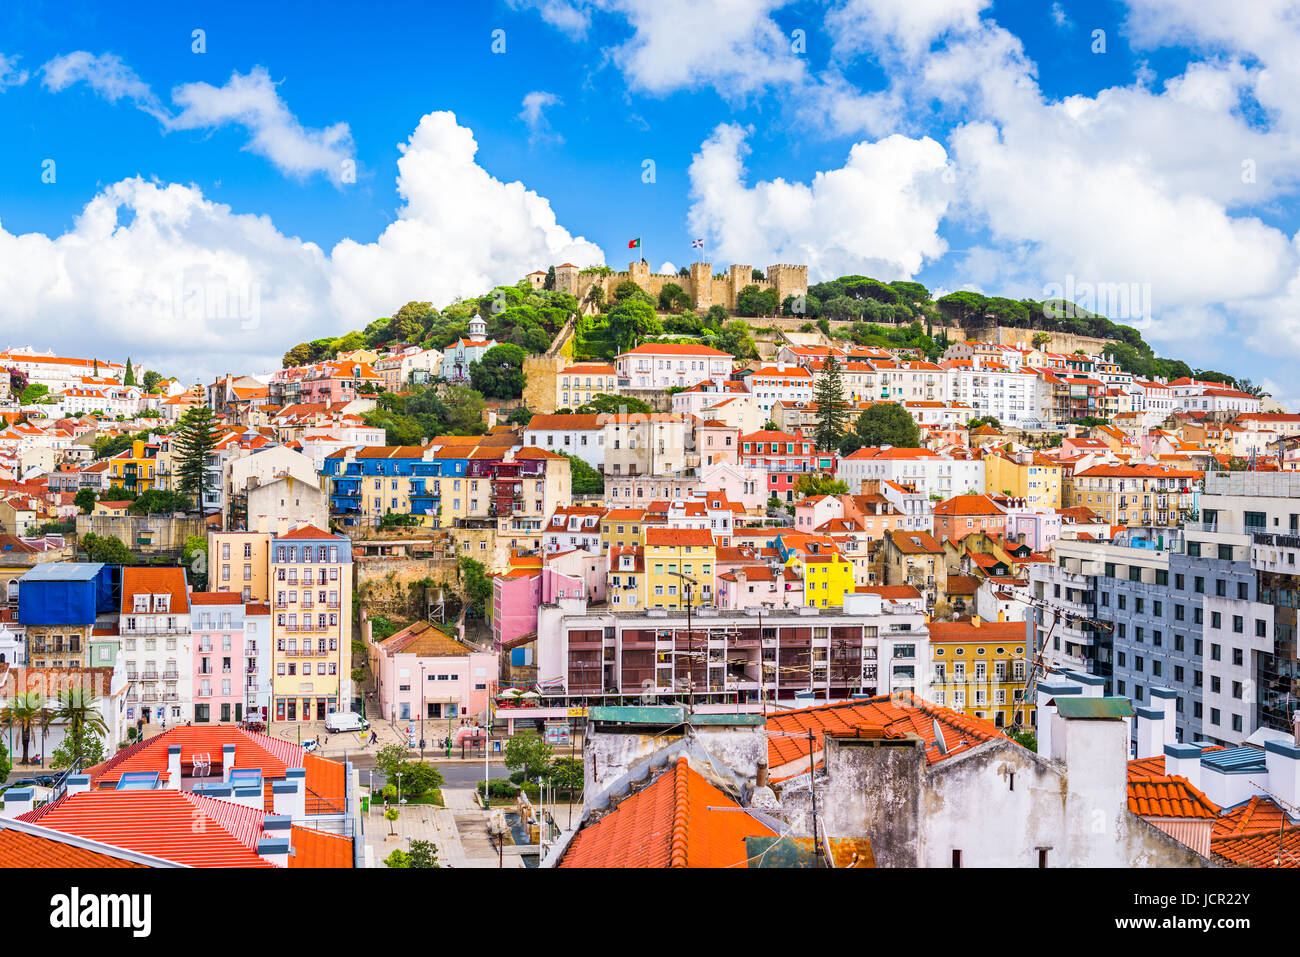 Lisbon, Portugal skyline at Sao Jorge Castle. - Stock Image